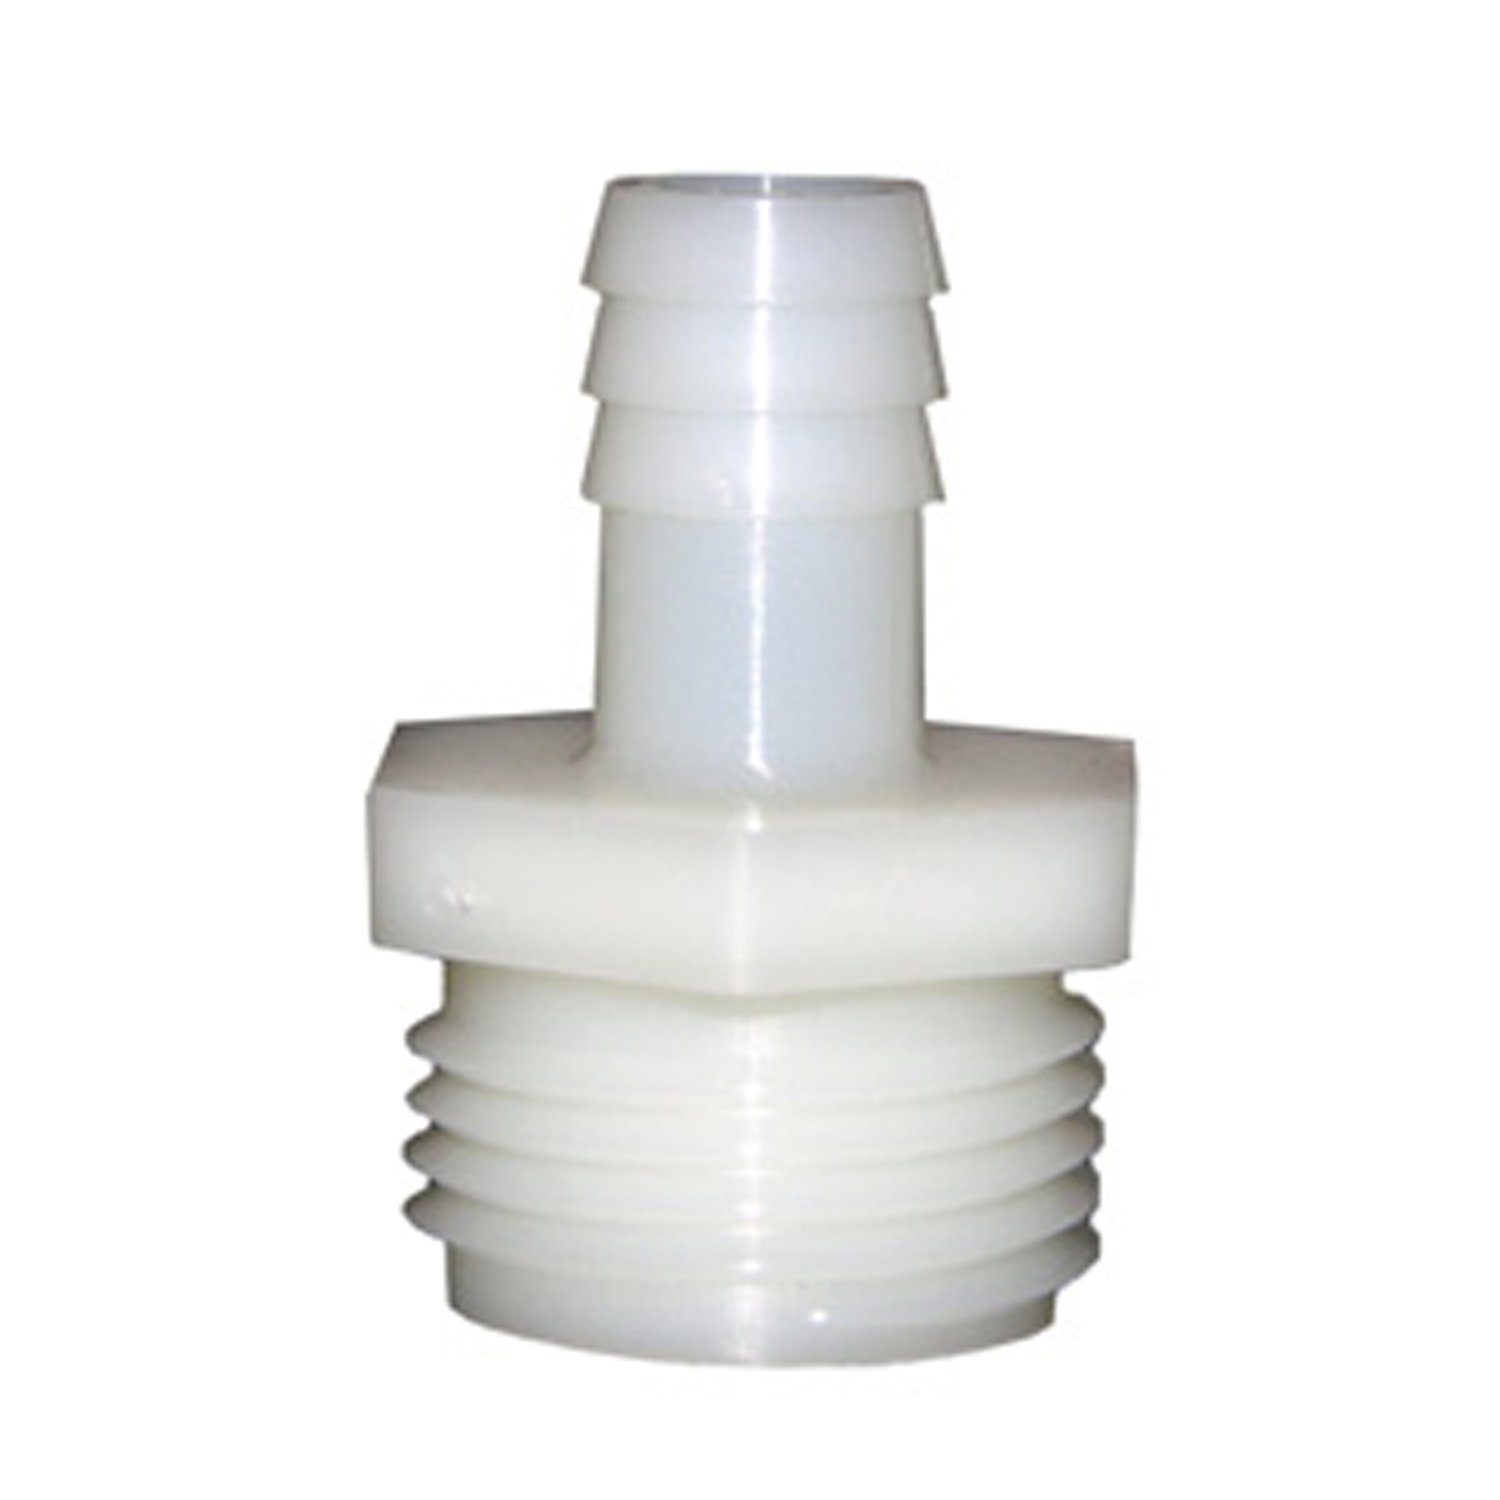 LASCO 19-9507 Male Hose Thread Adapter Barb Fitting with 5/8-Inch Barb and 3/4-Inch Male Hose Thread, Nylon